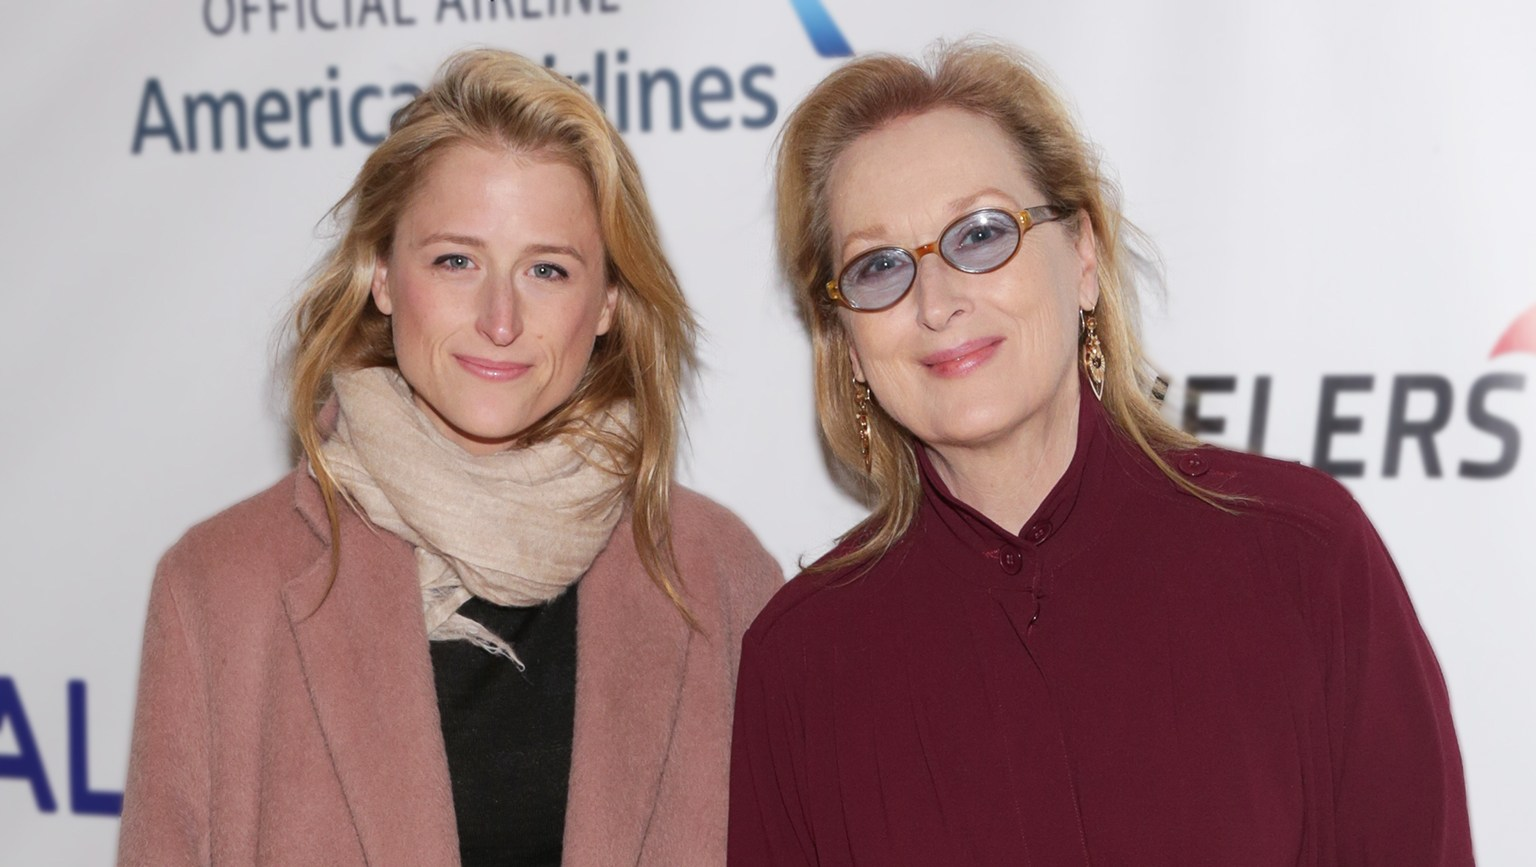 Meryl Streep's Daughter Mamie Gummer and Fiance Mehar Sethi Welcome First Child